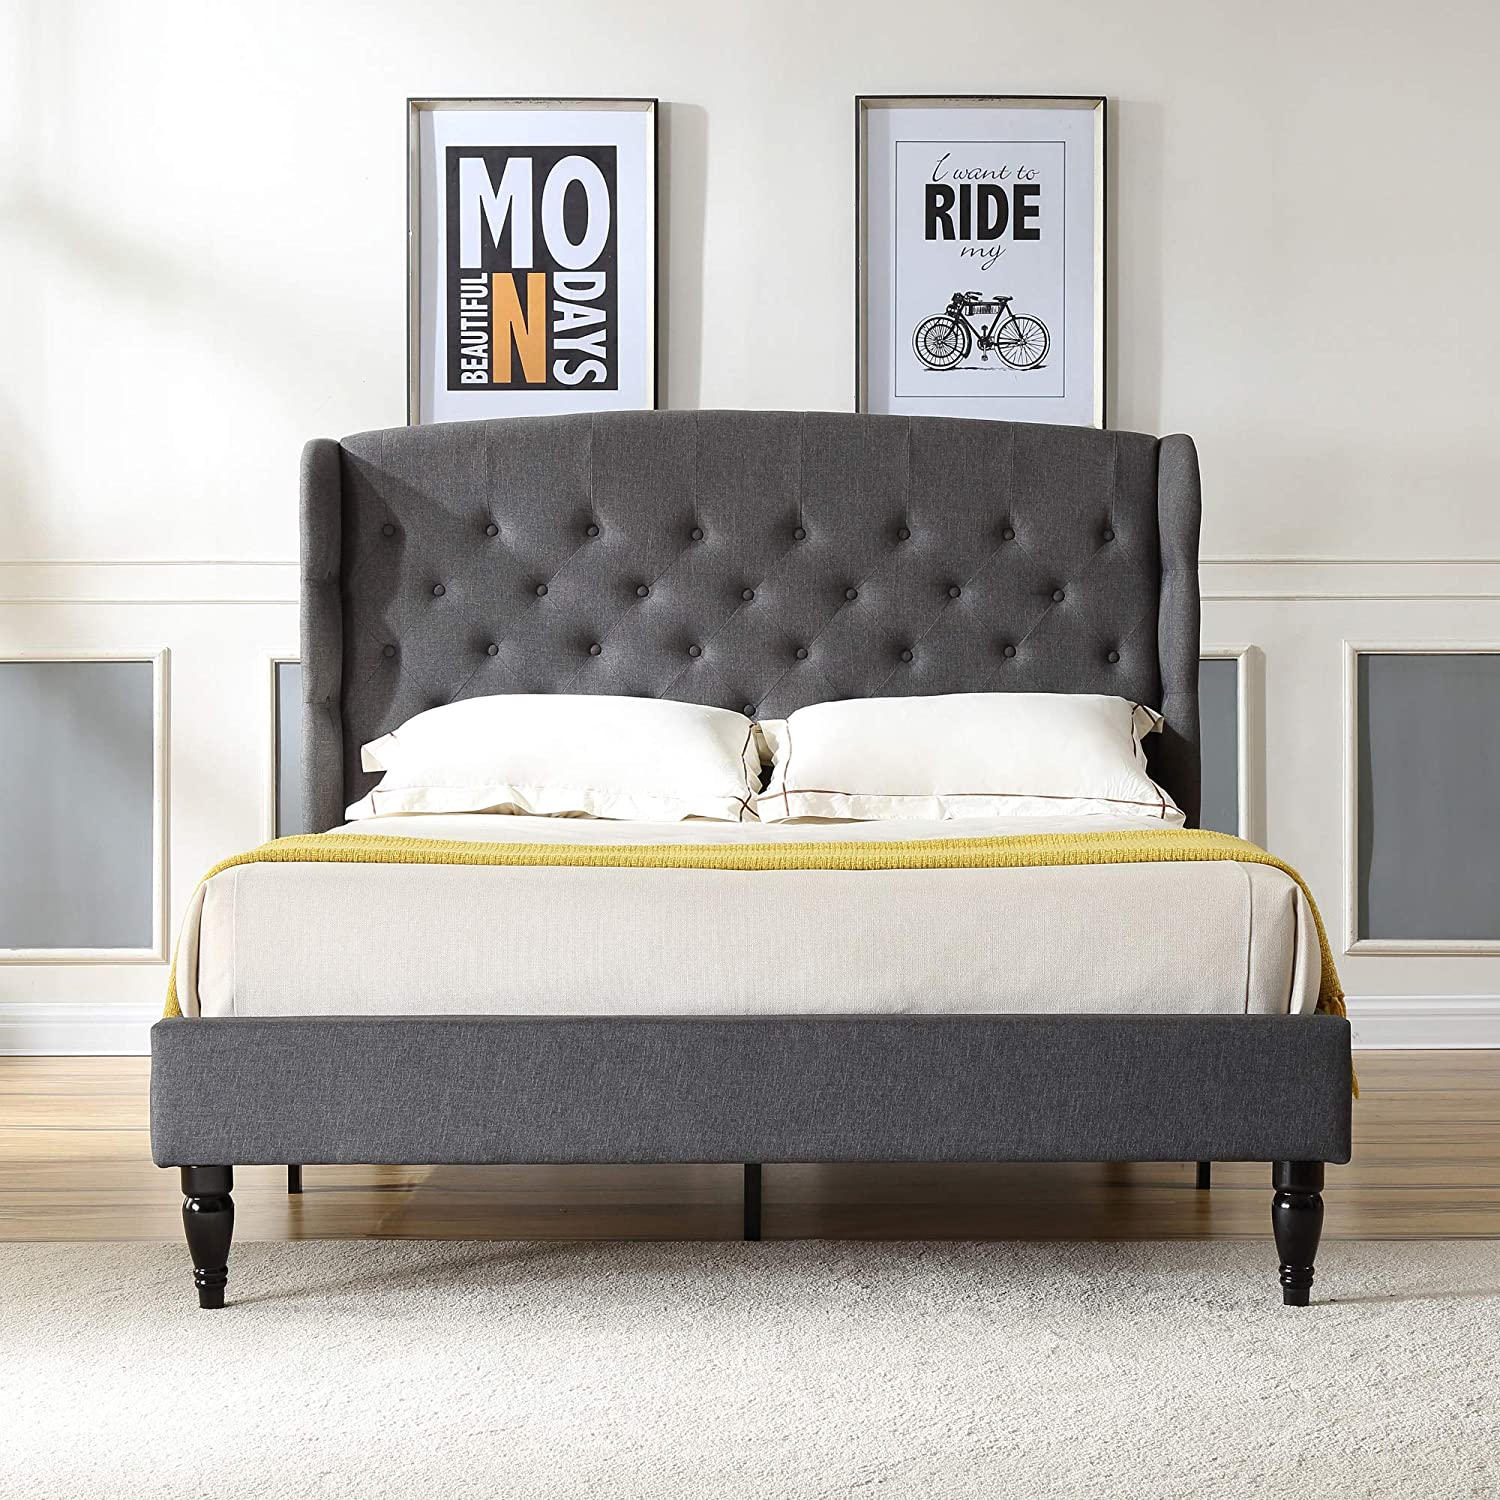 Brighton Upholstered Platform Bed Headboard and Wood Frame with Wood Slat Support Grey, King